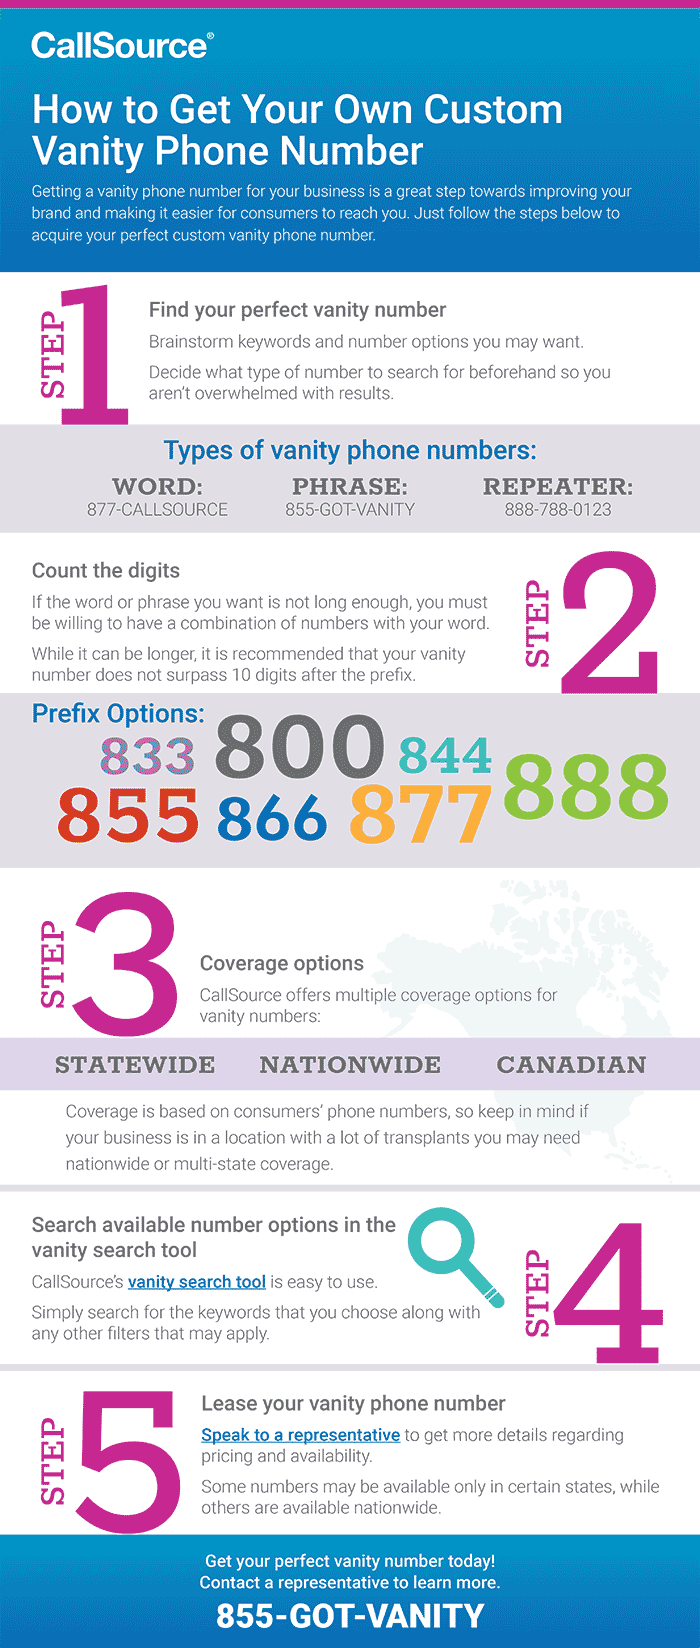 How to Get Your Own Custom Vanity Phone Number - Infographic